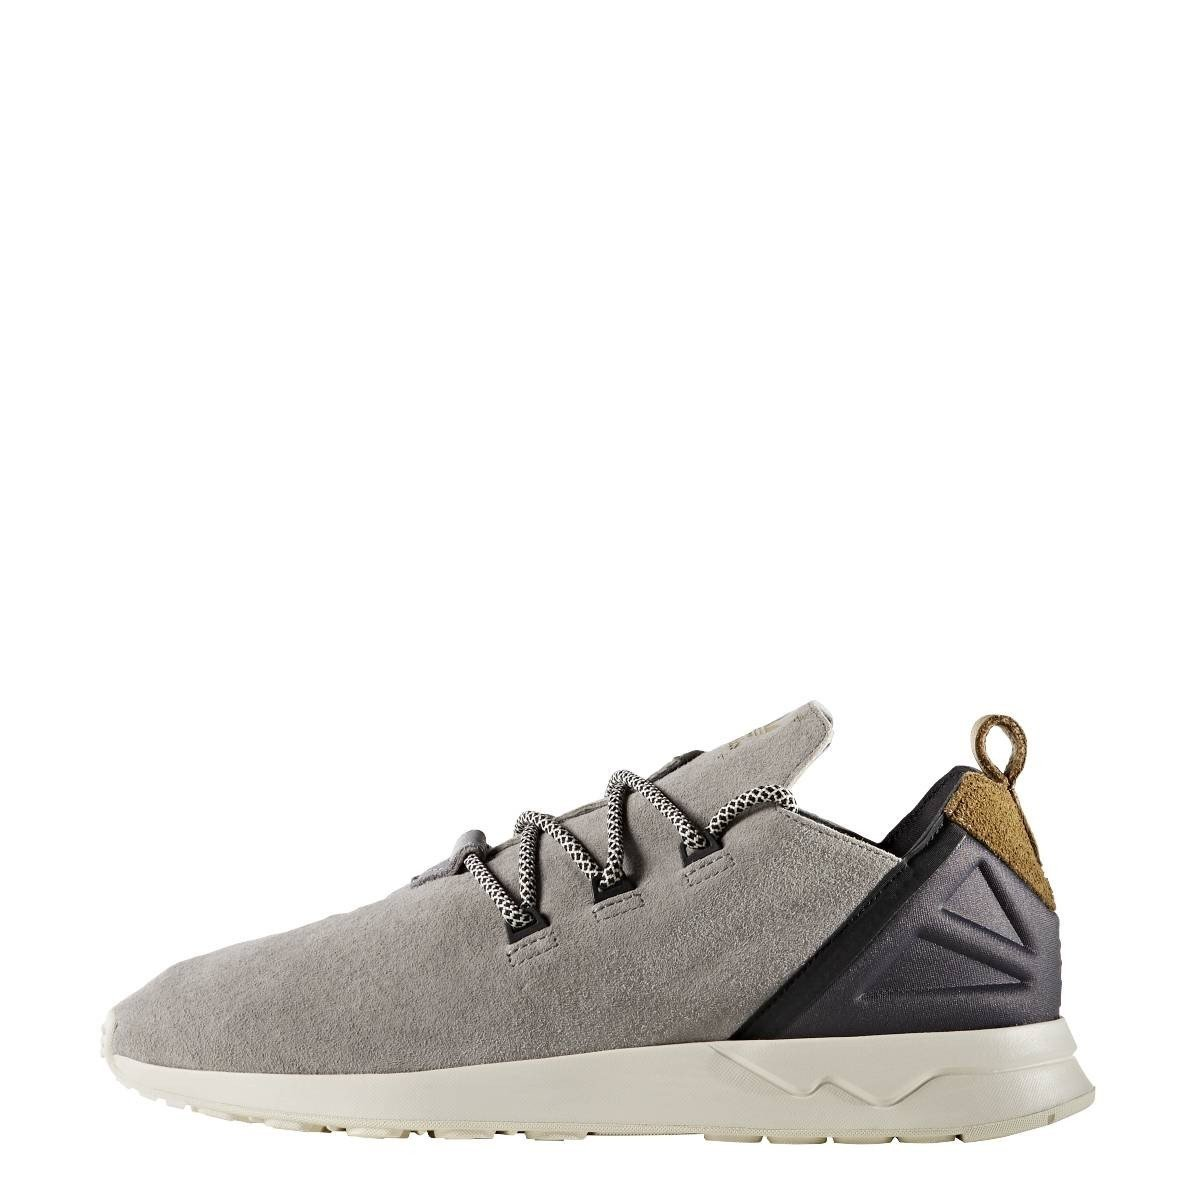 Adidas ZX Flux ADV X, light onixcraft khakichalk white, 8